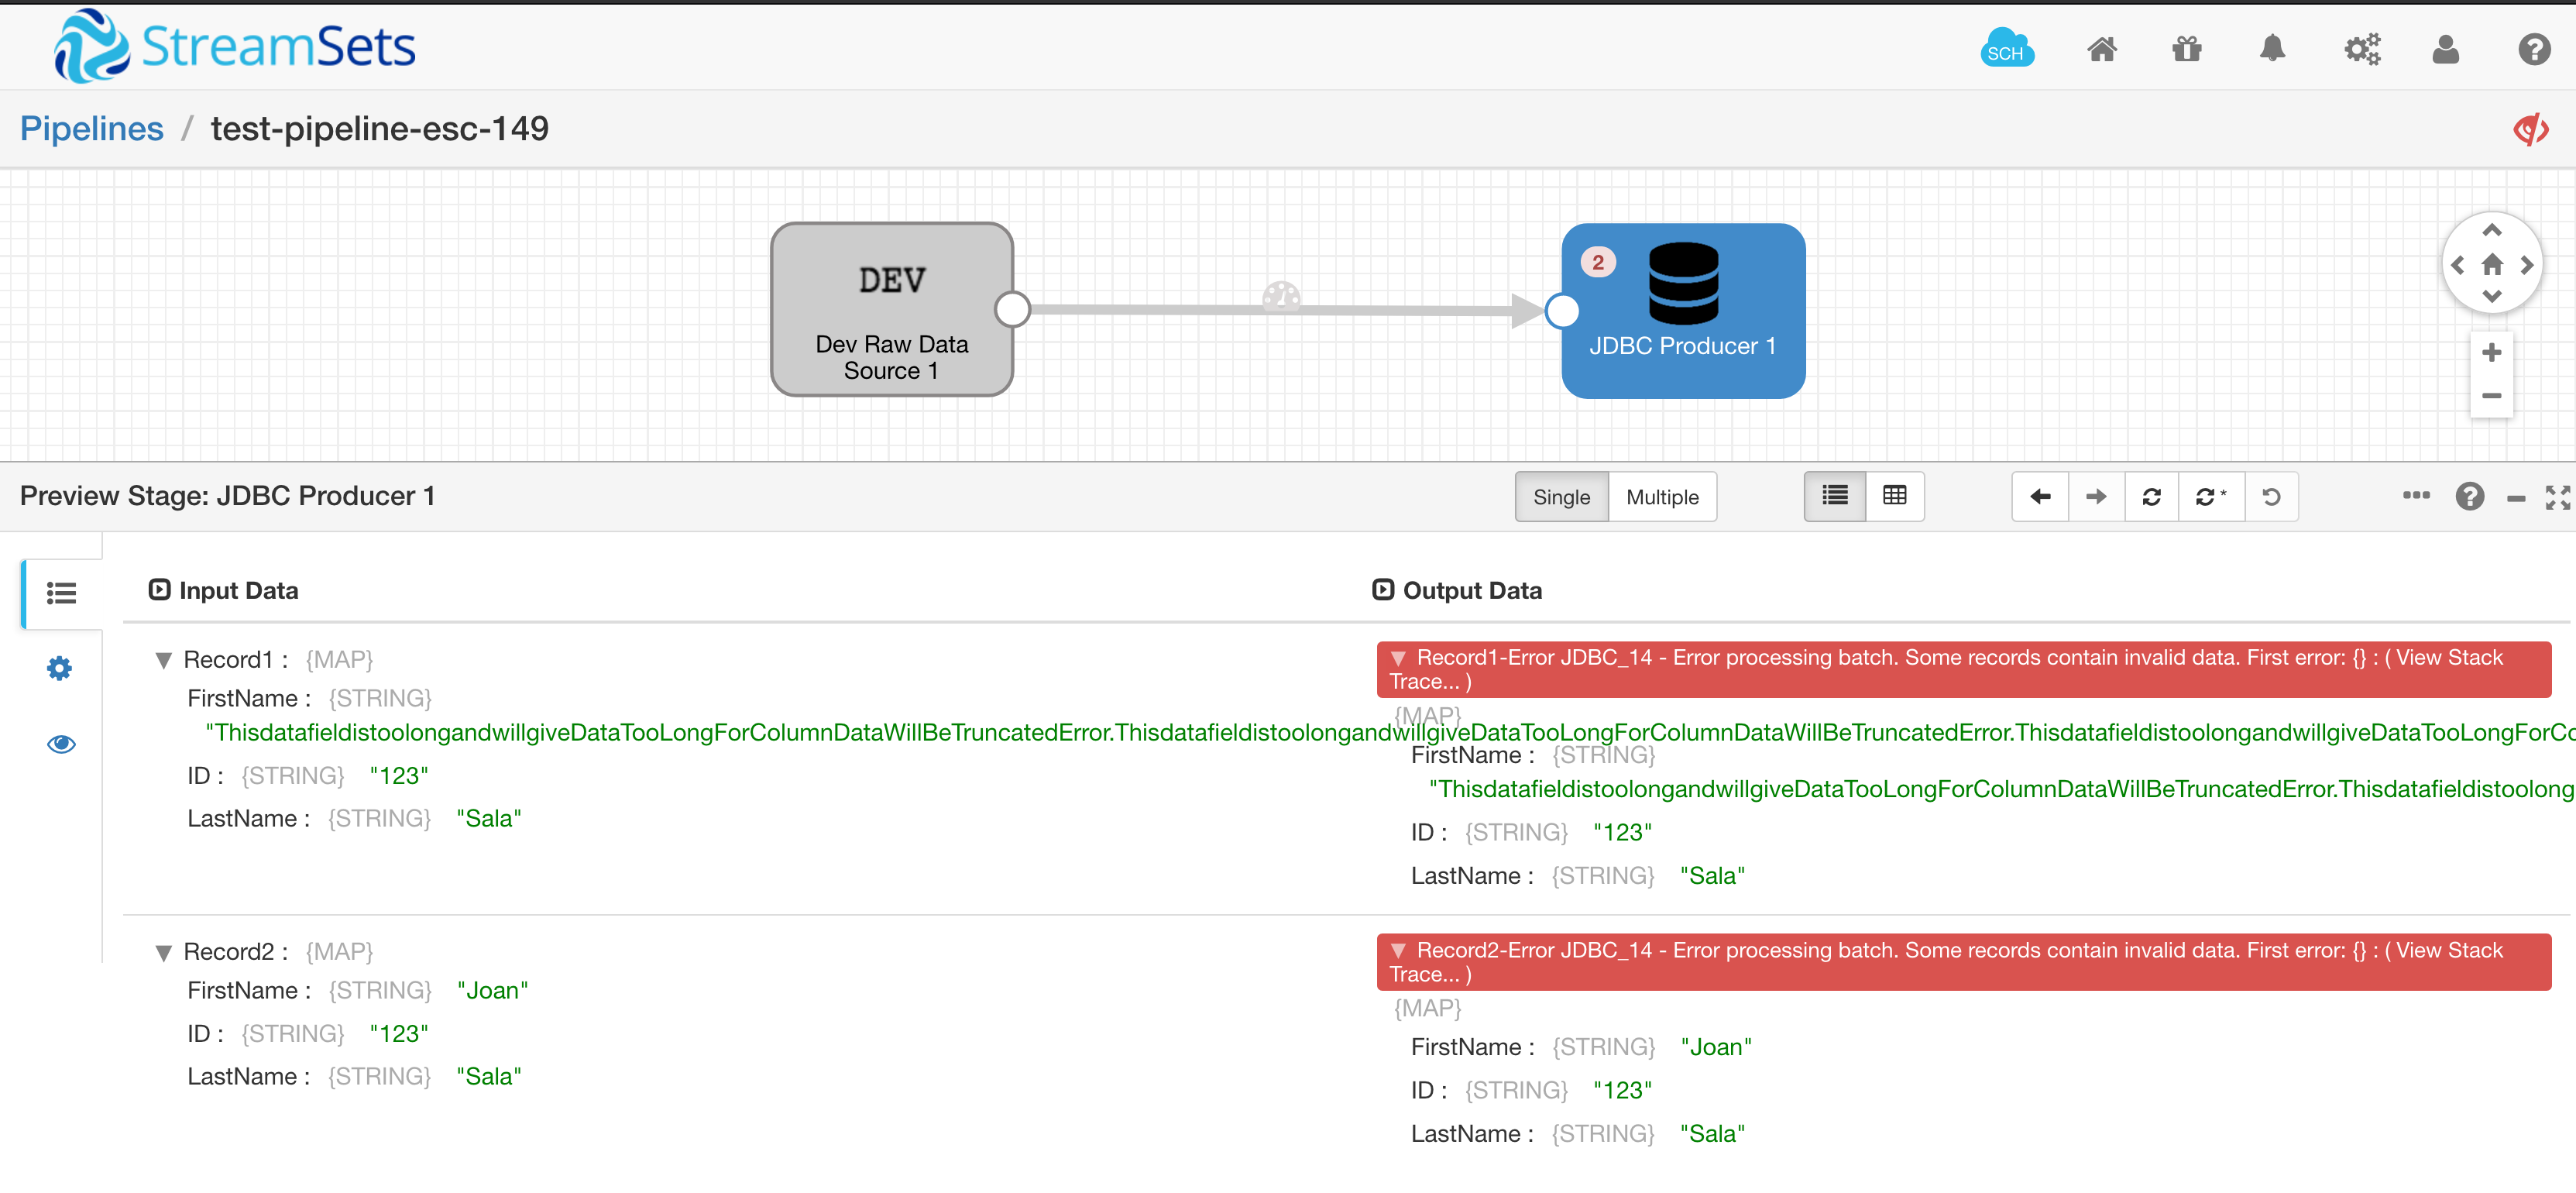 SDC-10671] Missmatch between error value and record value - Jira